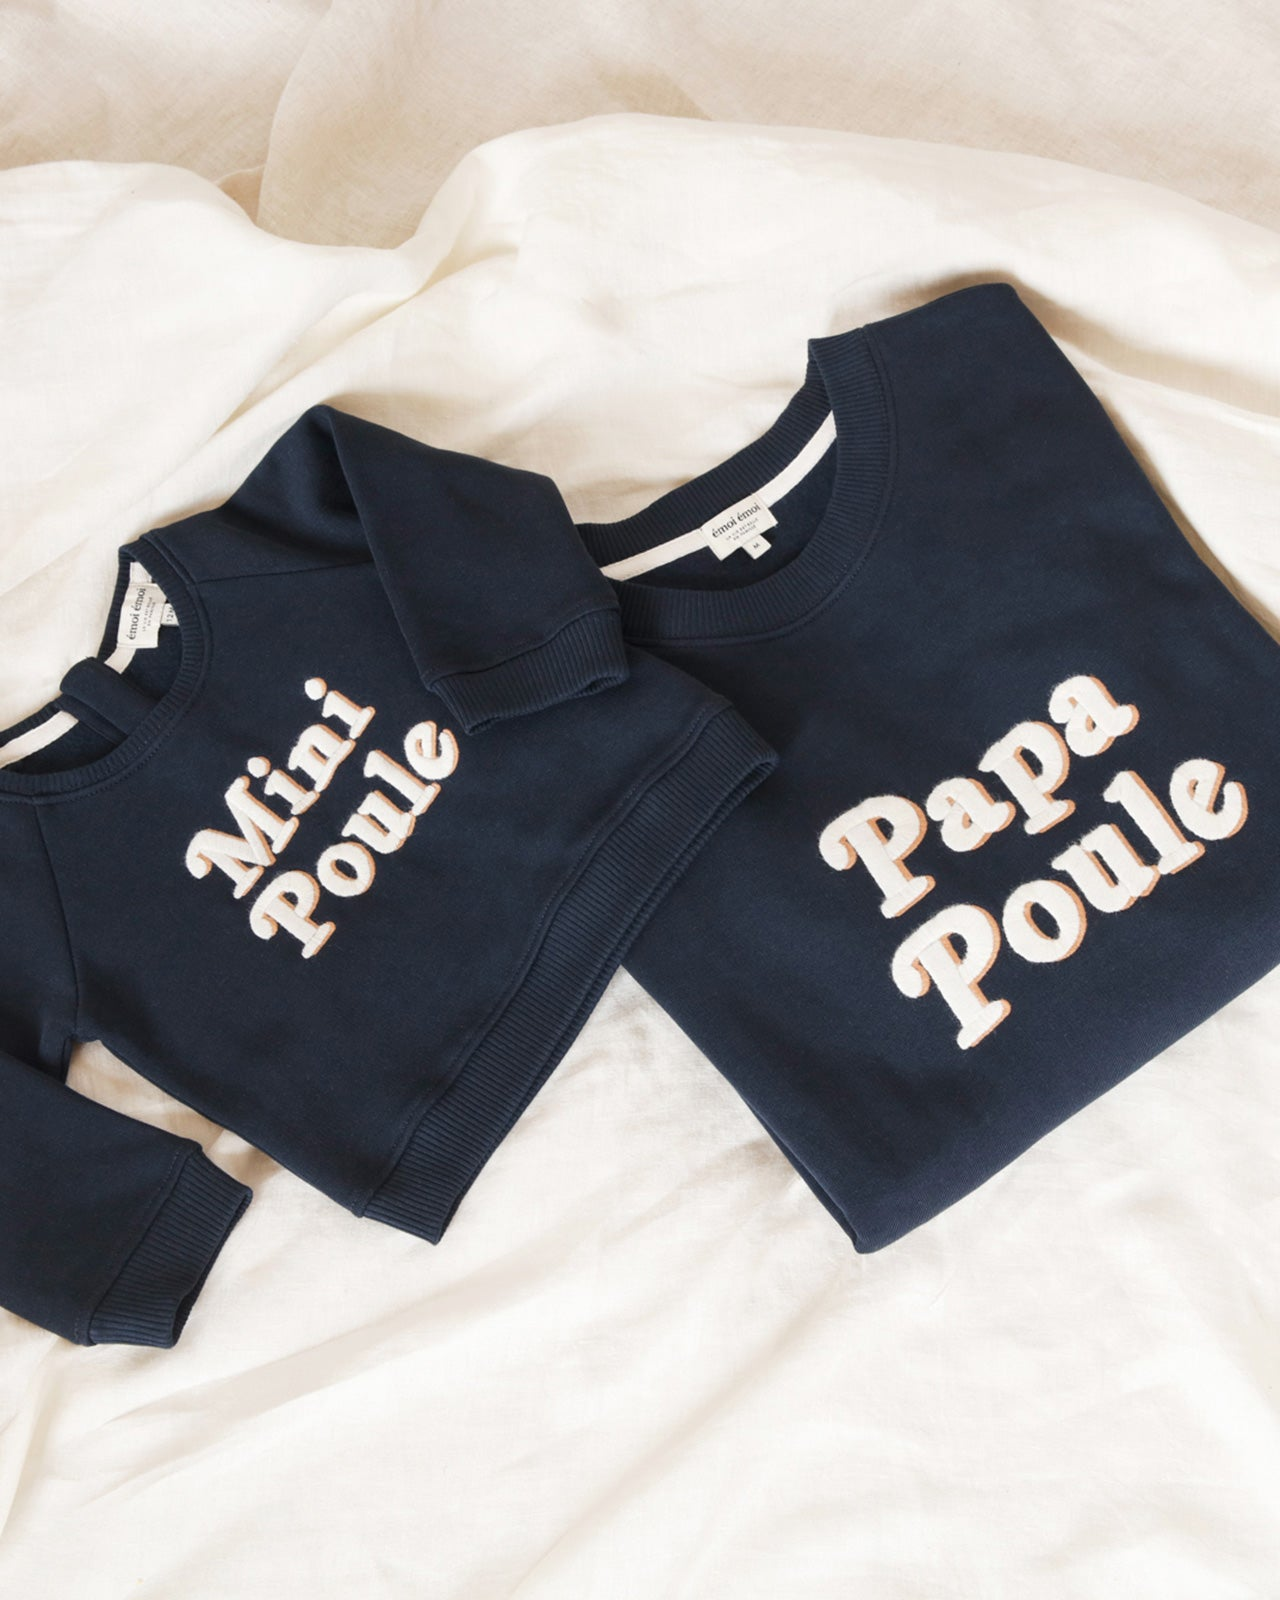 Le sweat Mini poule en coton bio - charbon